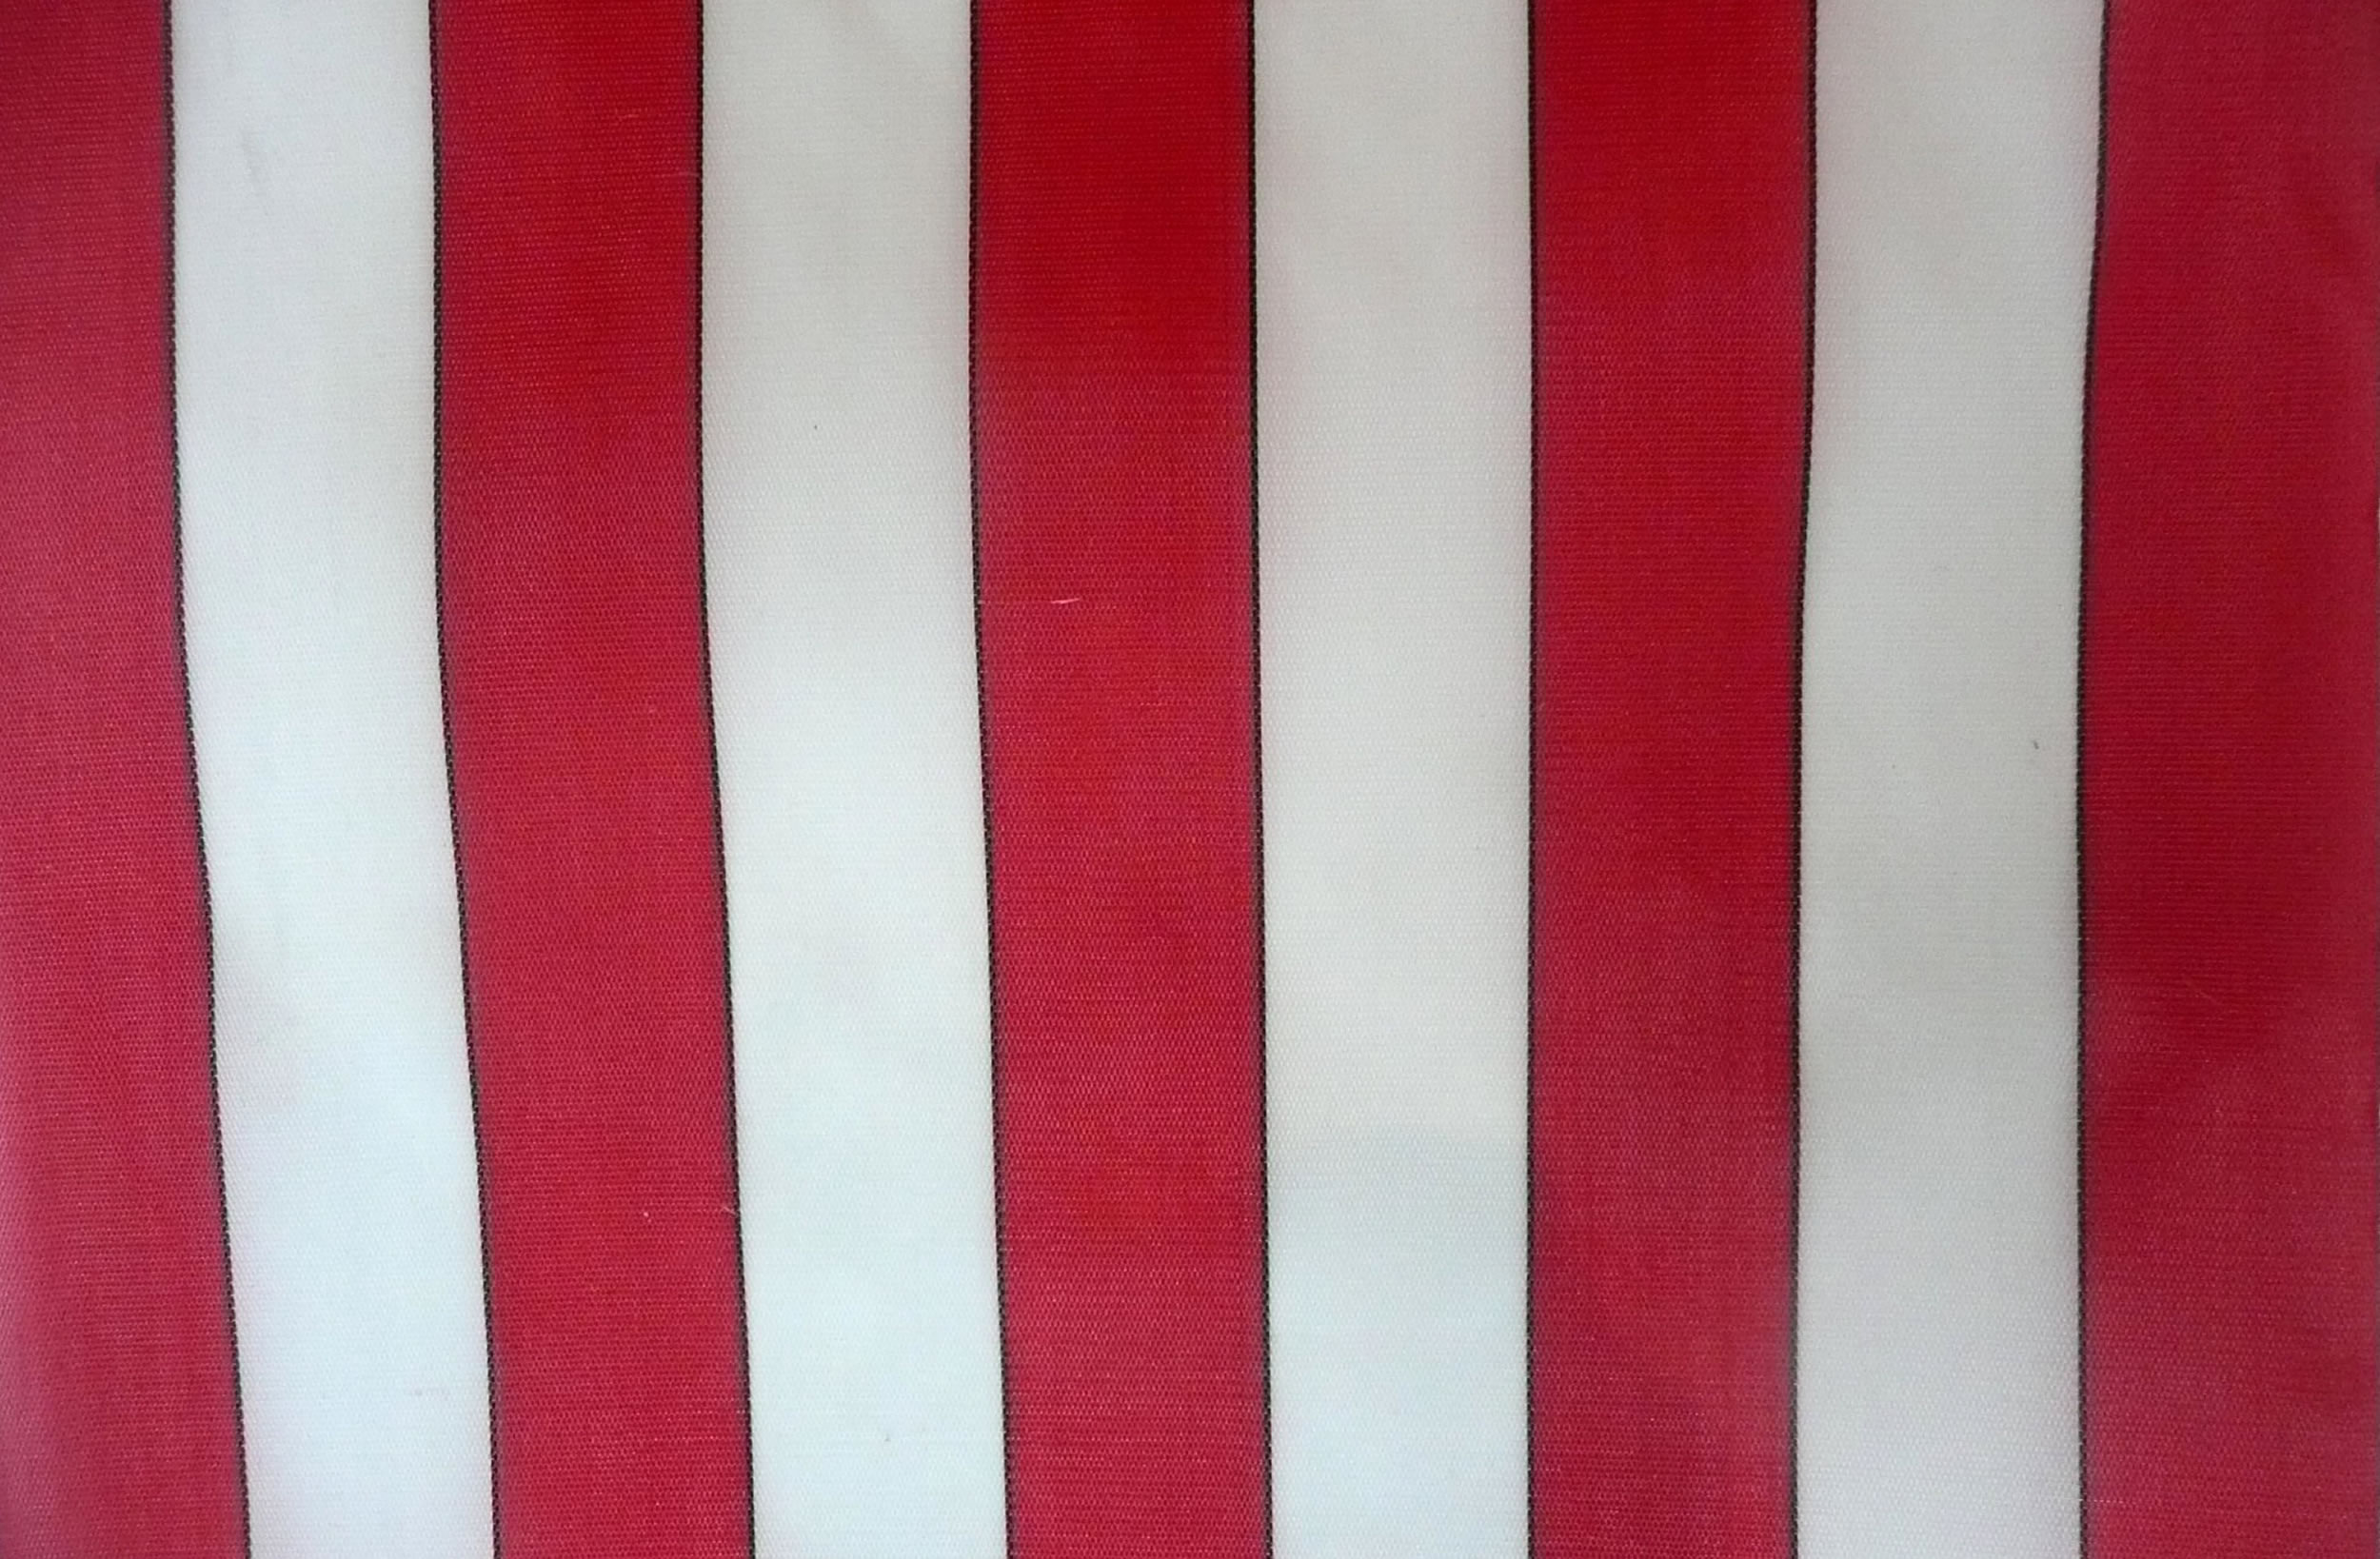 Red and White Waterproof Deckchair Fabric